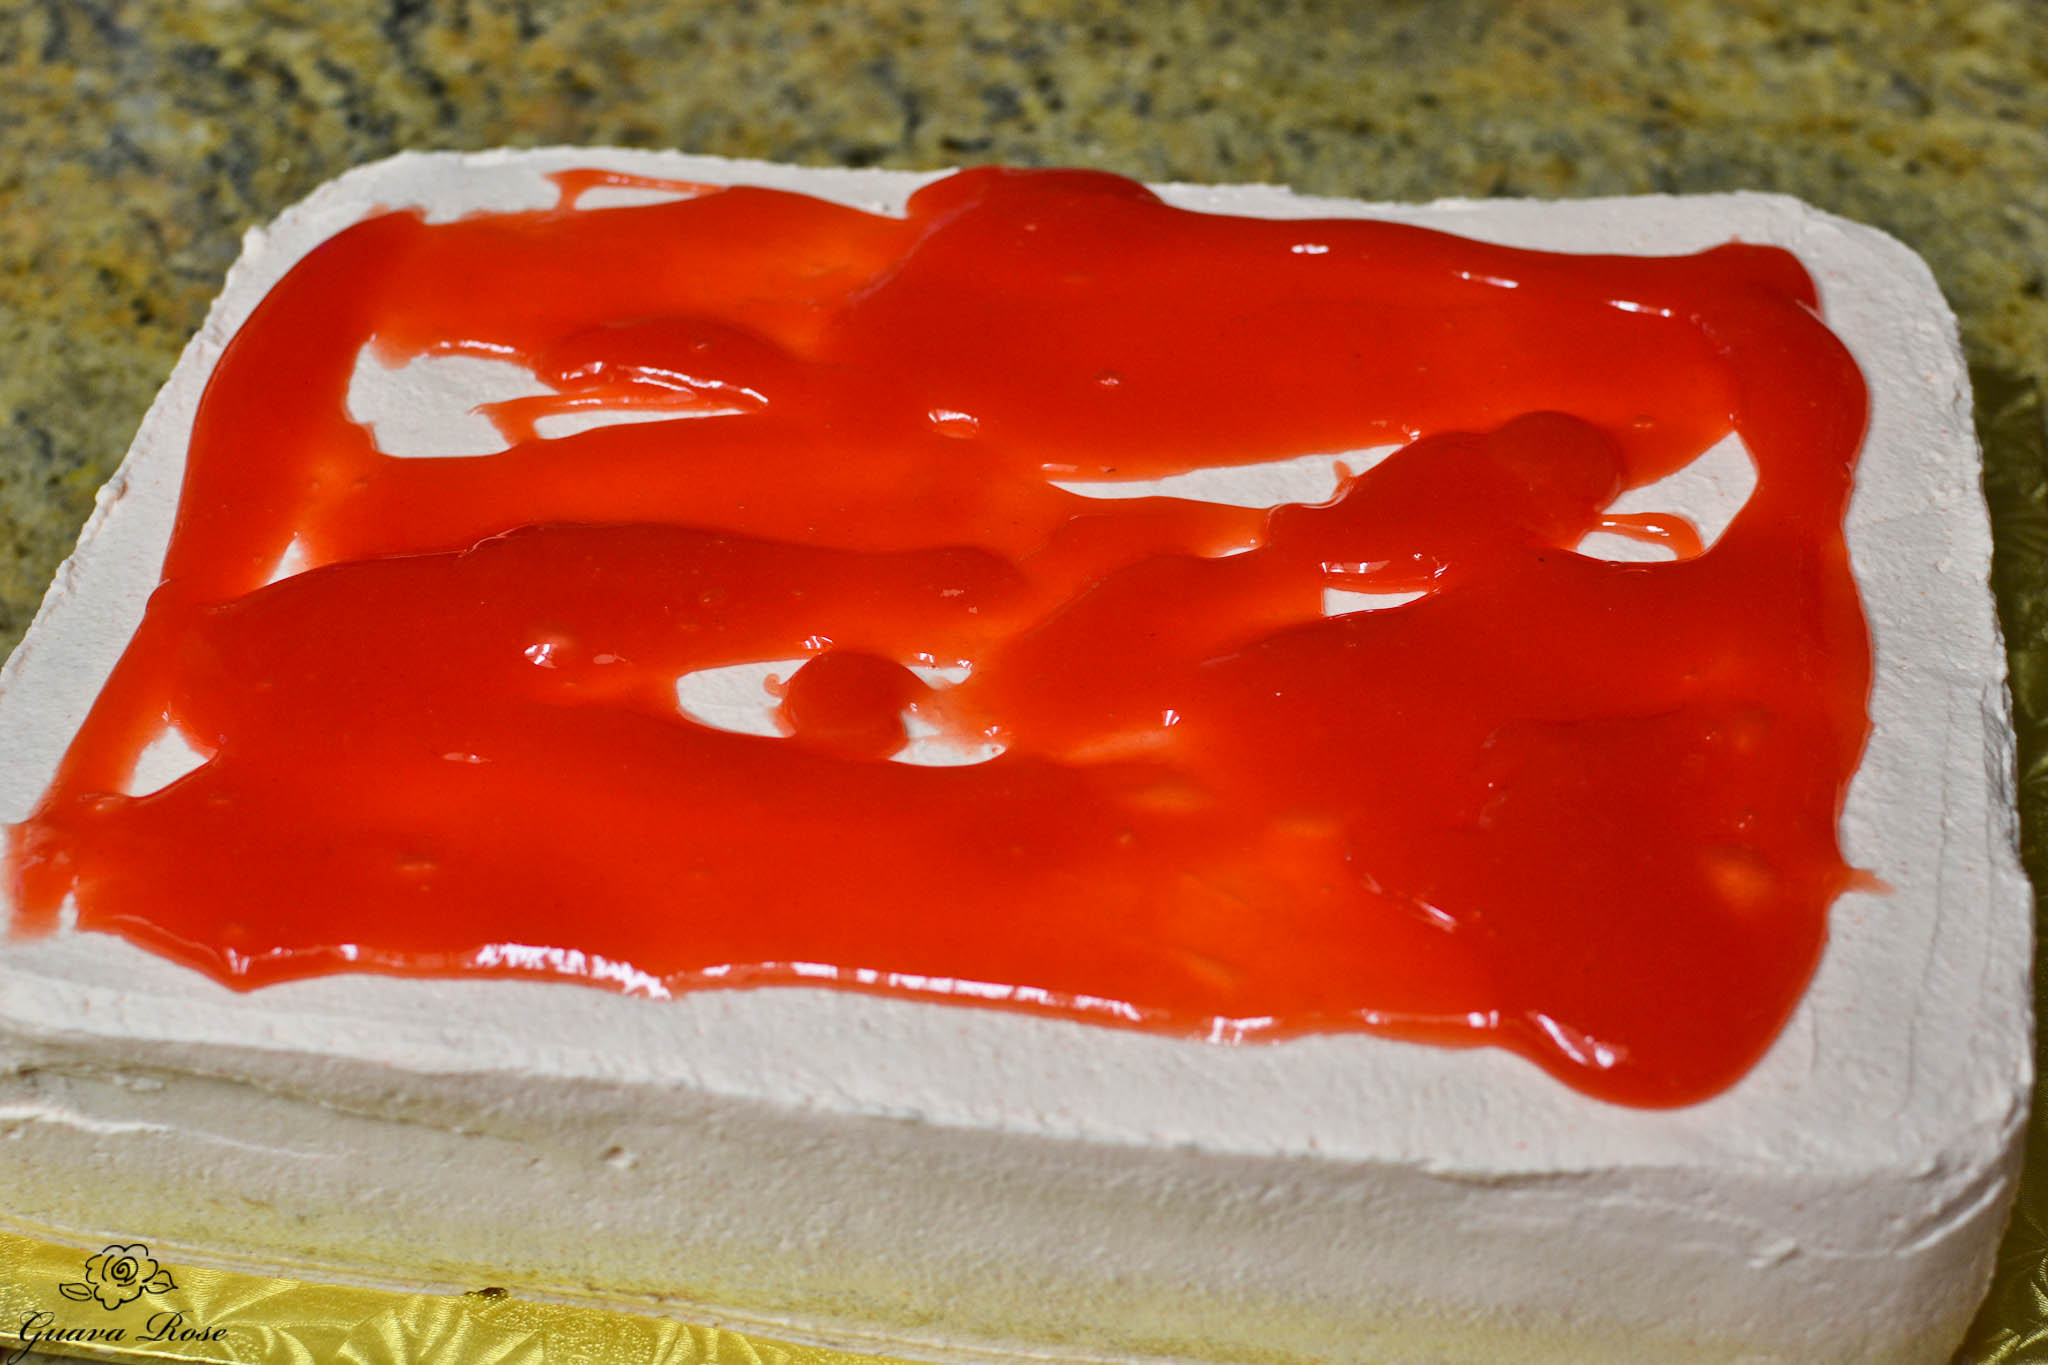 Guava glazed streamed over cake top